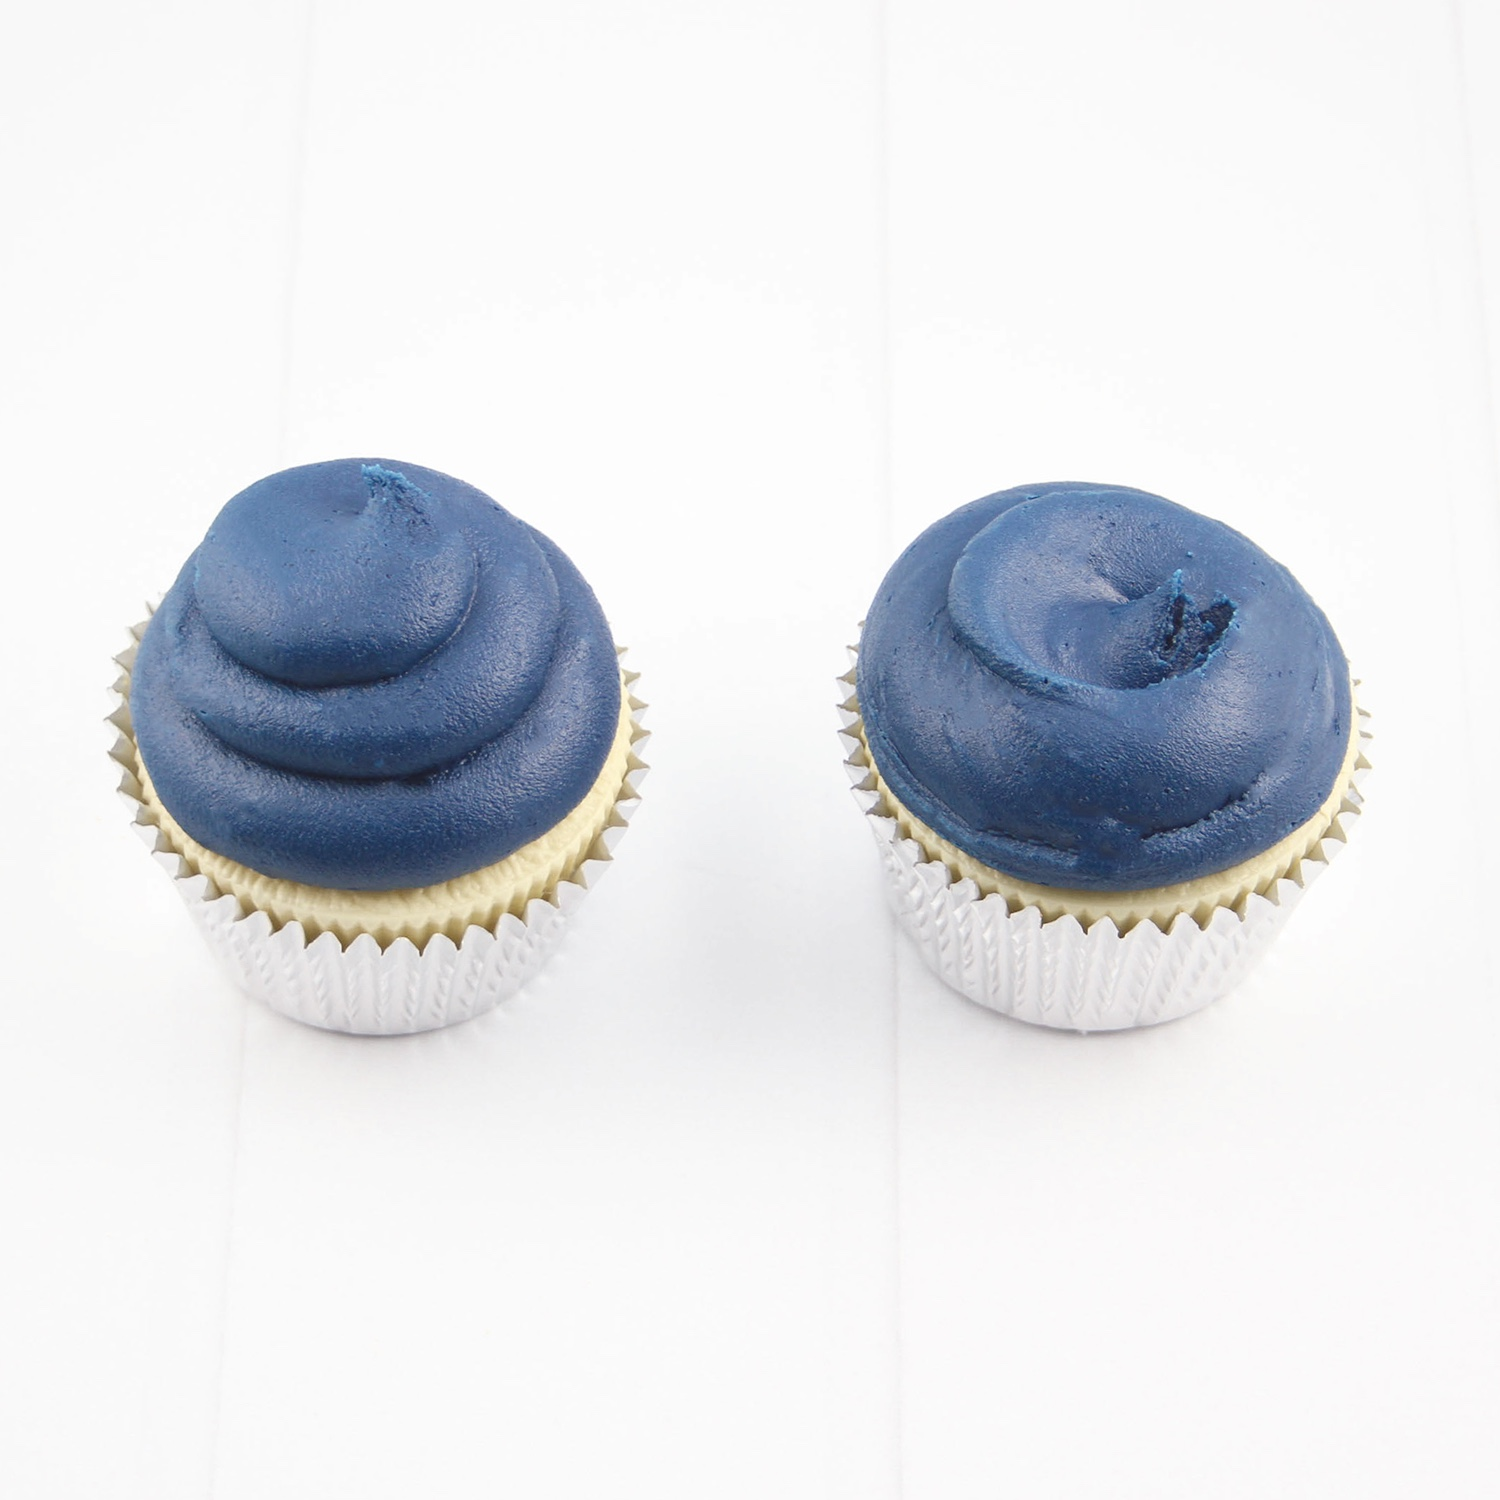 Nautical Navy Frosted Cupcakes